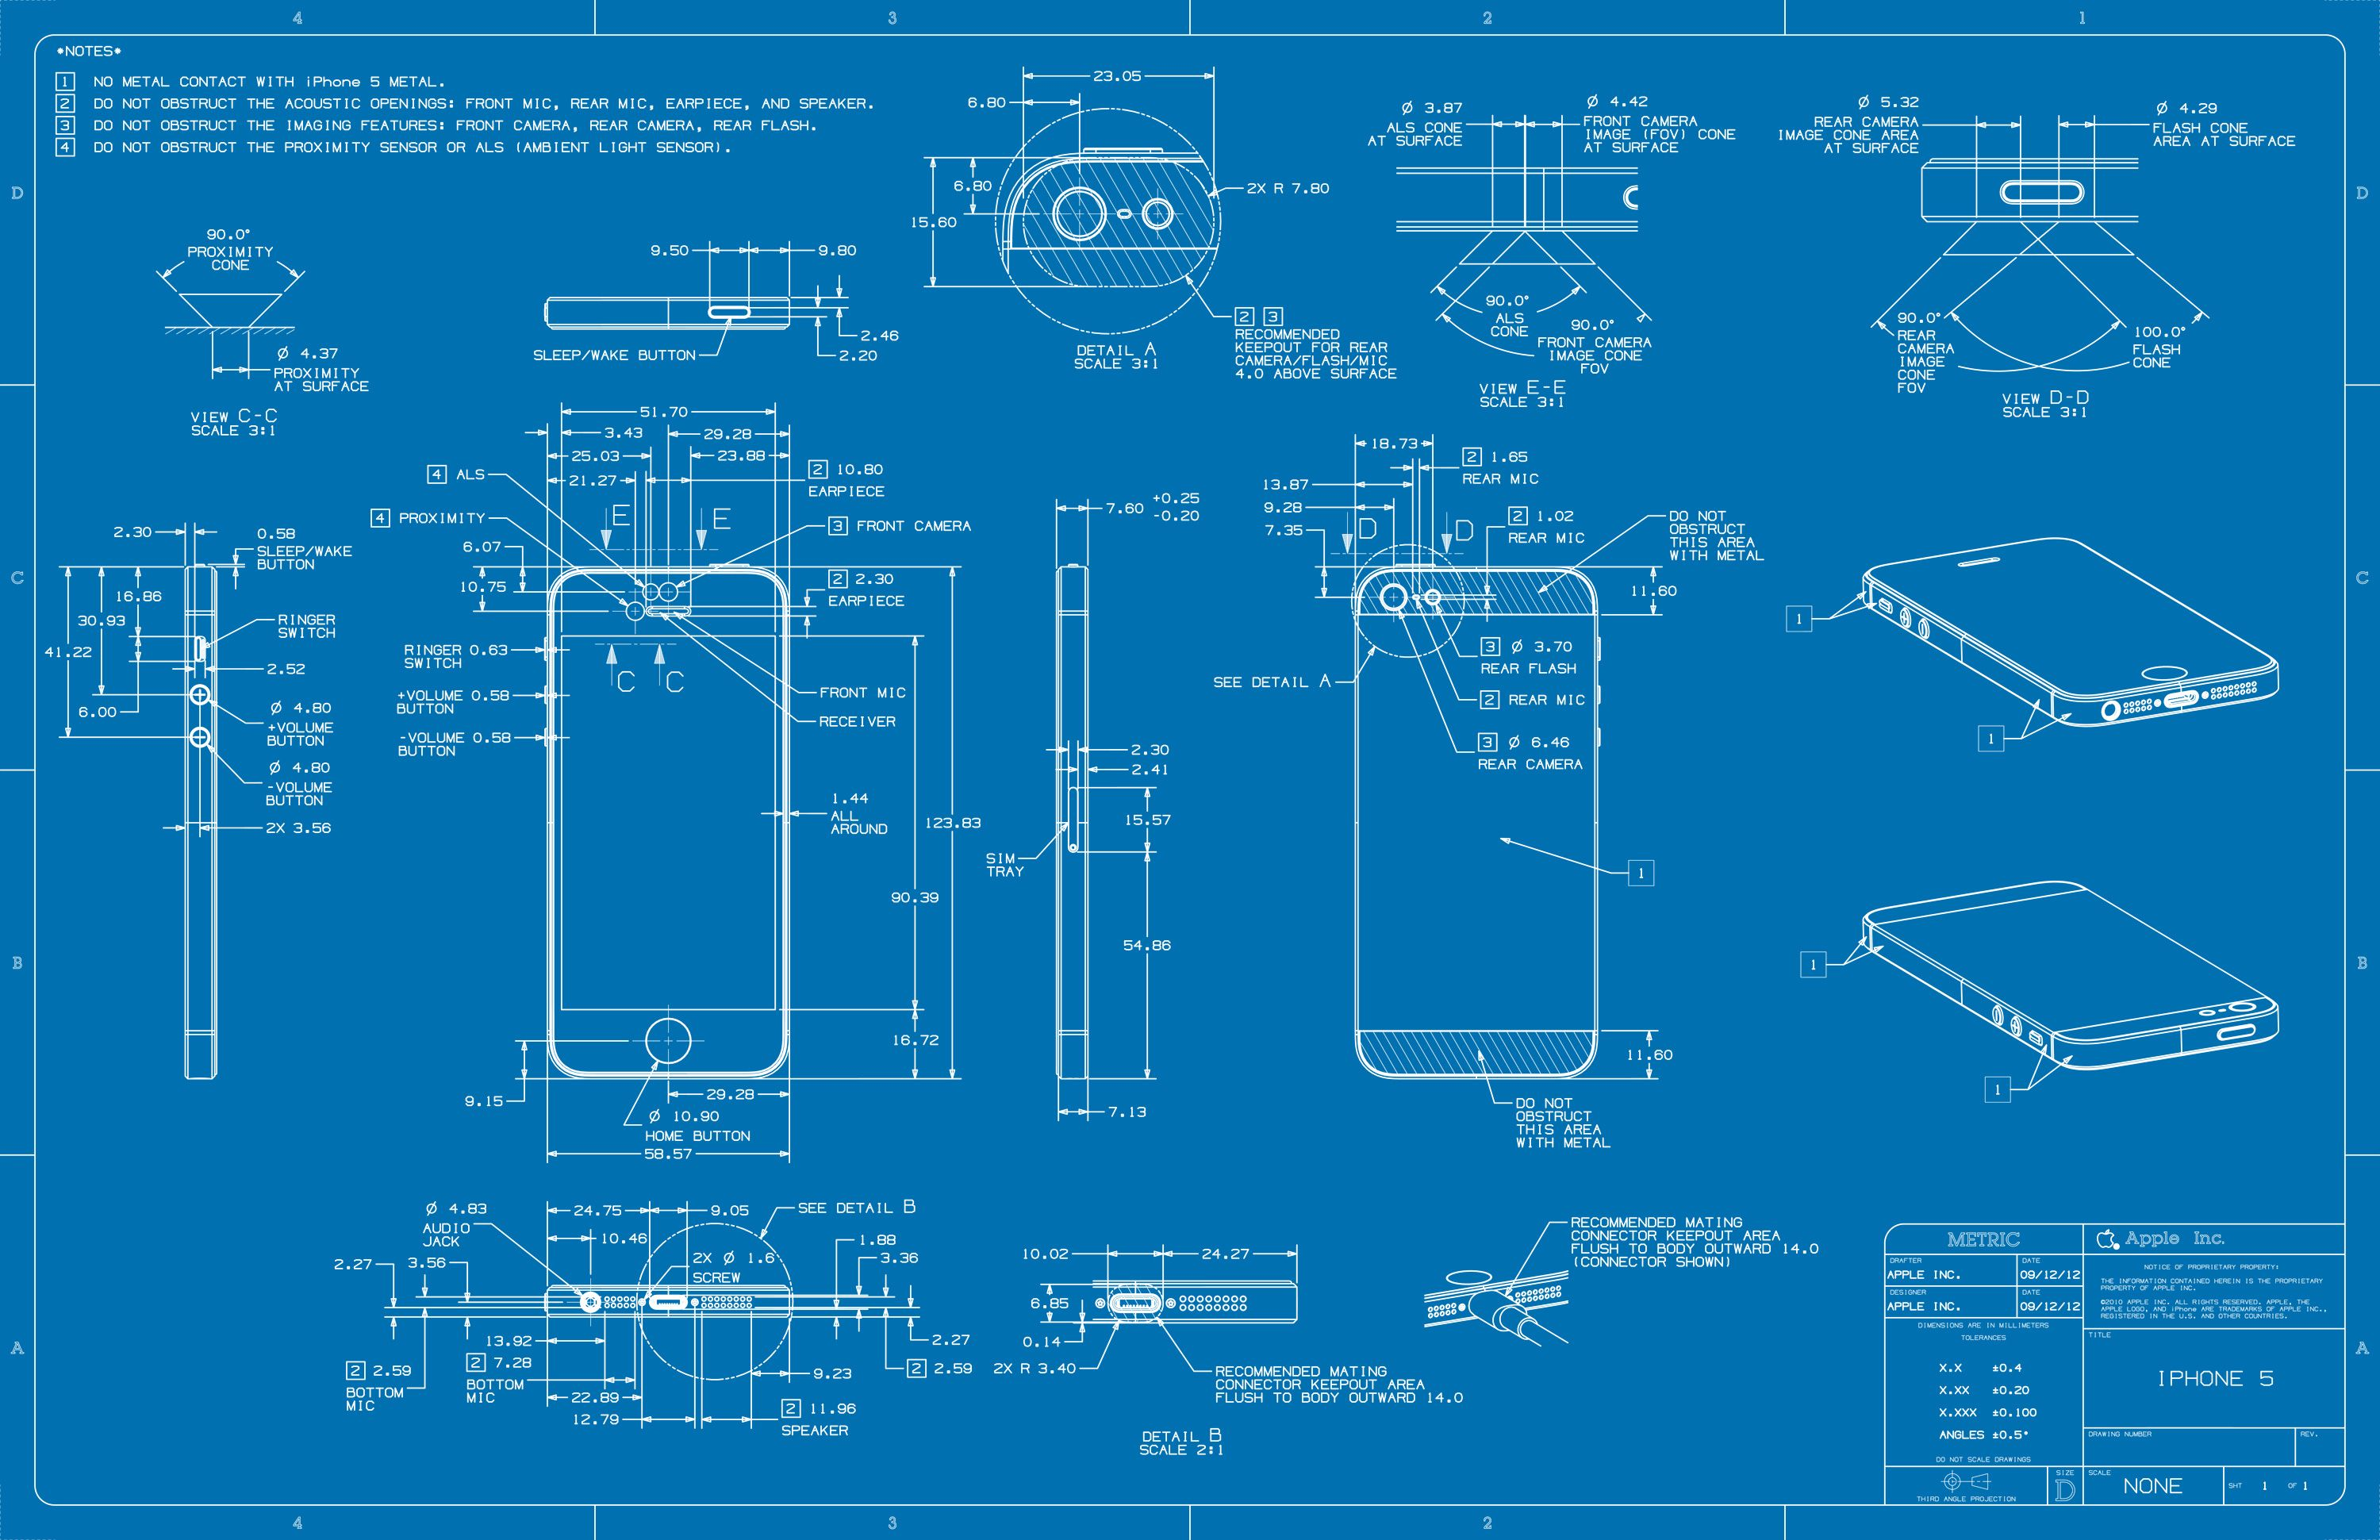 Mac spoilers iphone 5 dimensions blueprintsg 30001941 blueprints by apple malvernweather Gallery